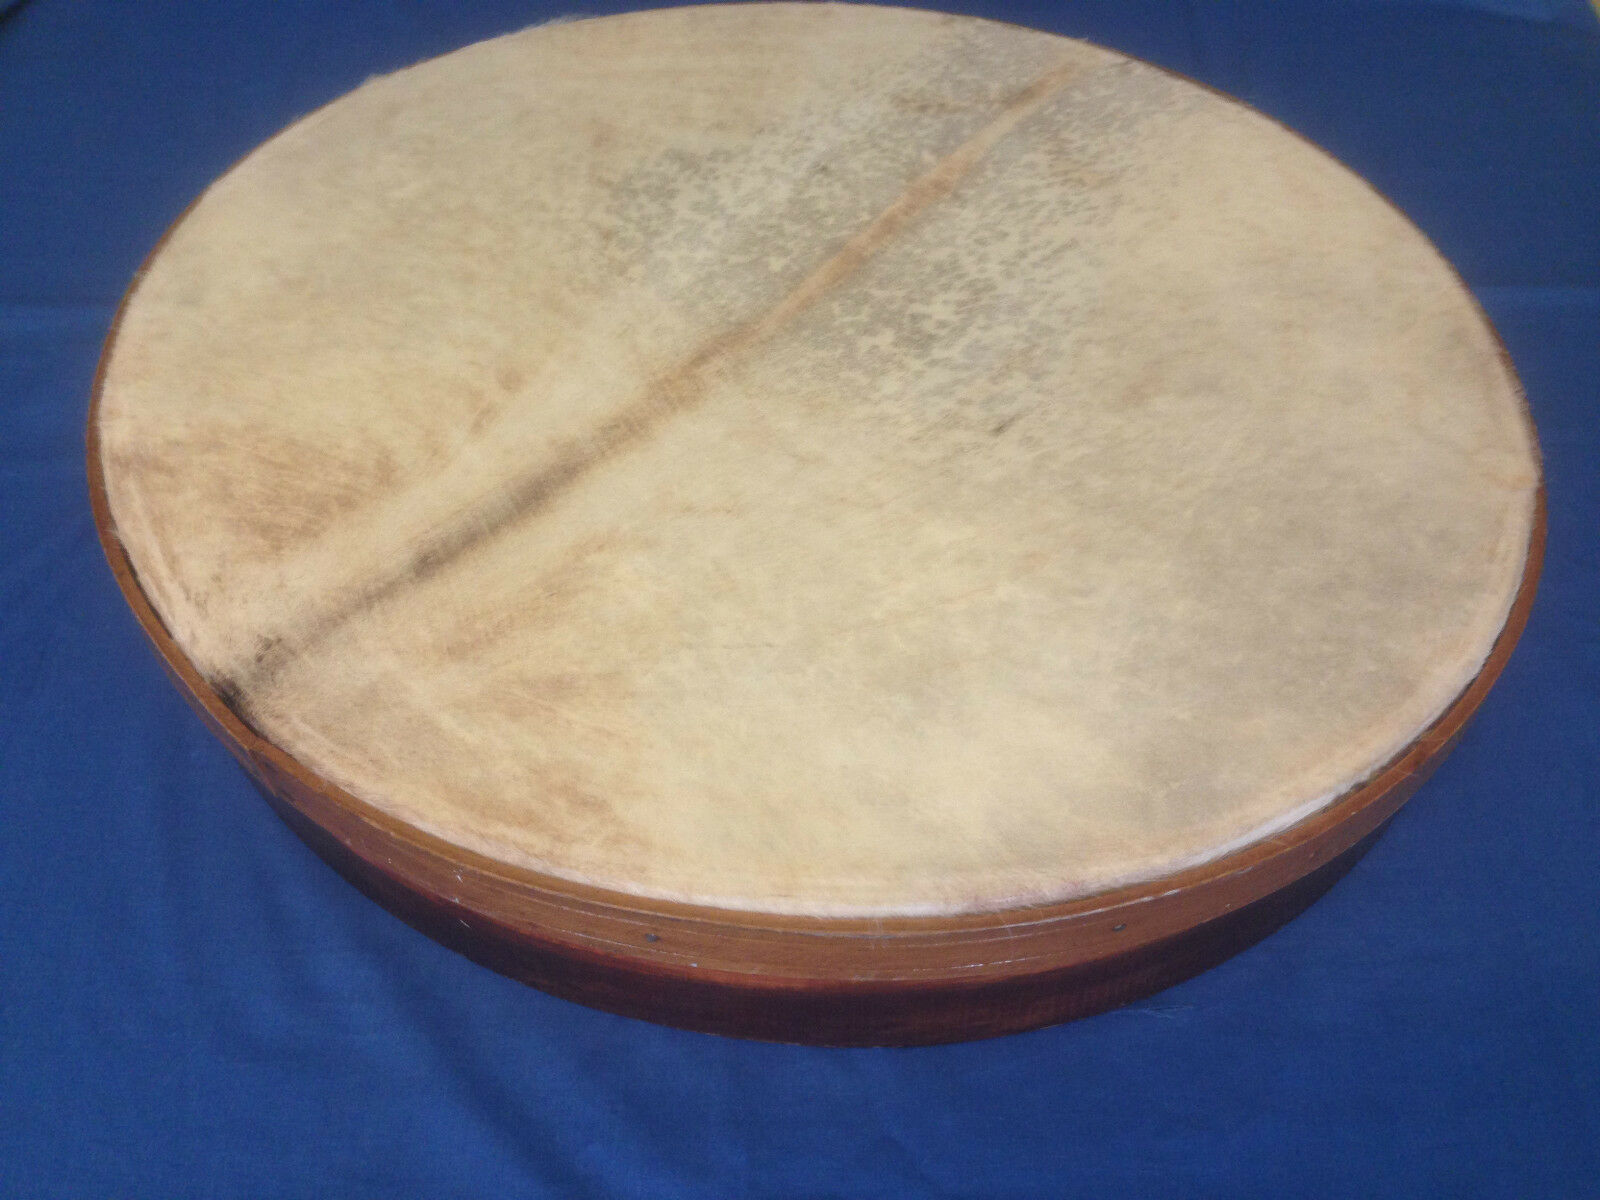 22  NATURAL LEATHER HANDMADE PANDEIRO BRAZILIAN TAMBOURINE PERCUSSION DRUM